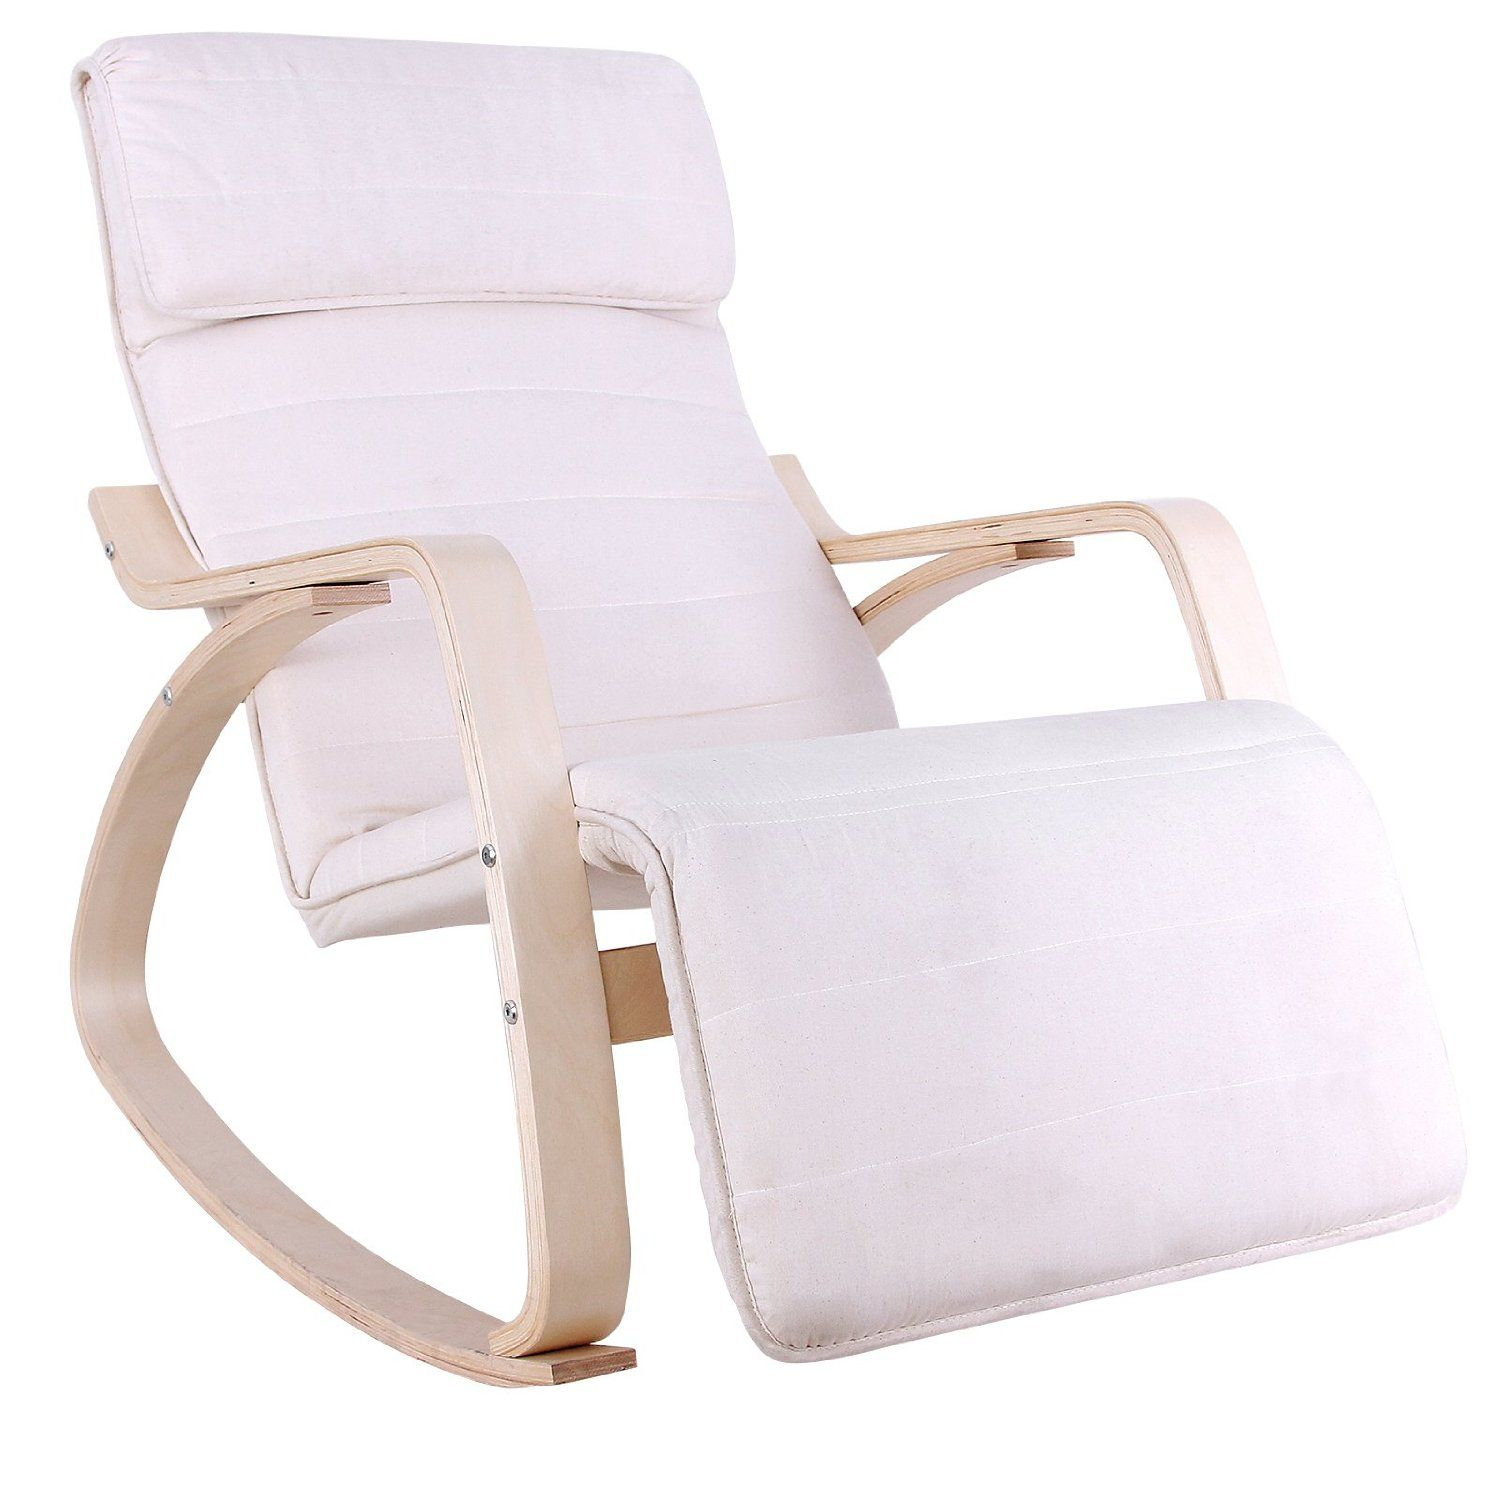 CHECK DETAILS BELLOW IKEA Recliner Chairs with Adjustable